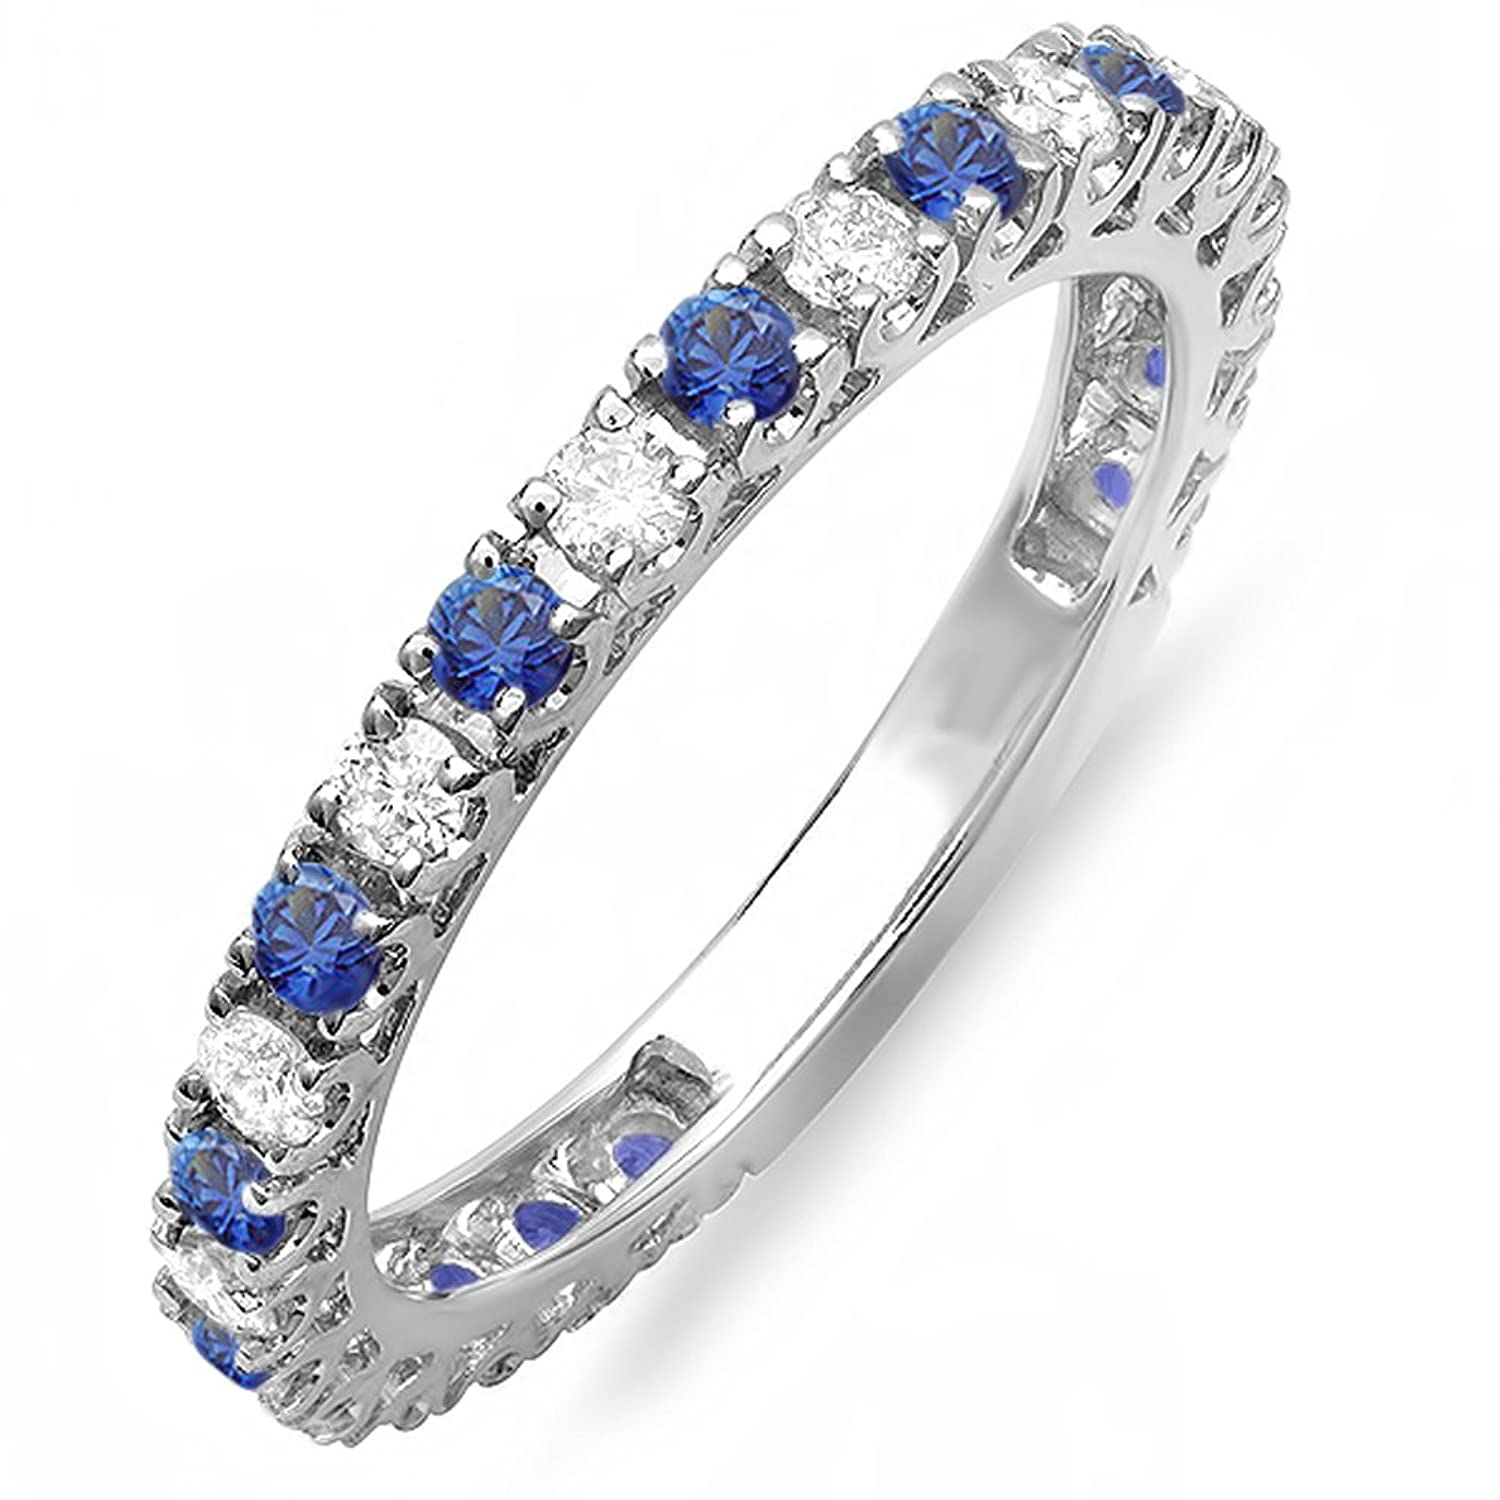 anniversary eternity bands wedding pinterest band rings and diamond sapphire pin